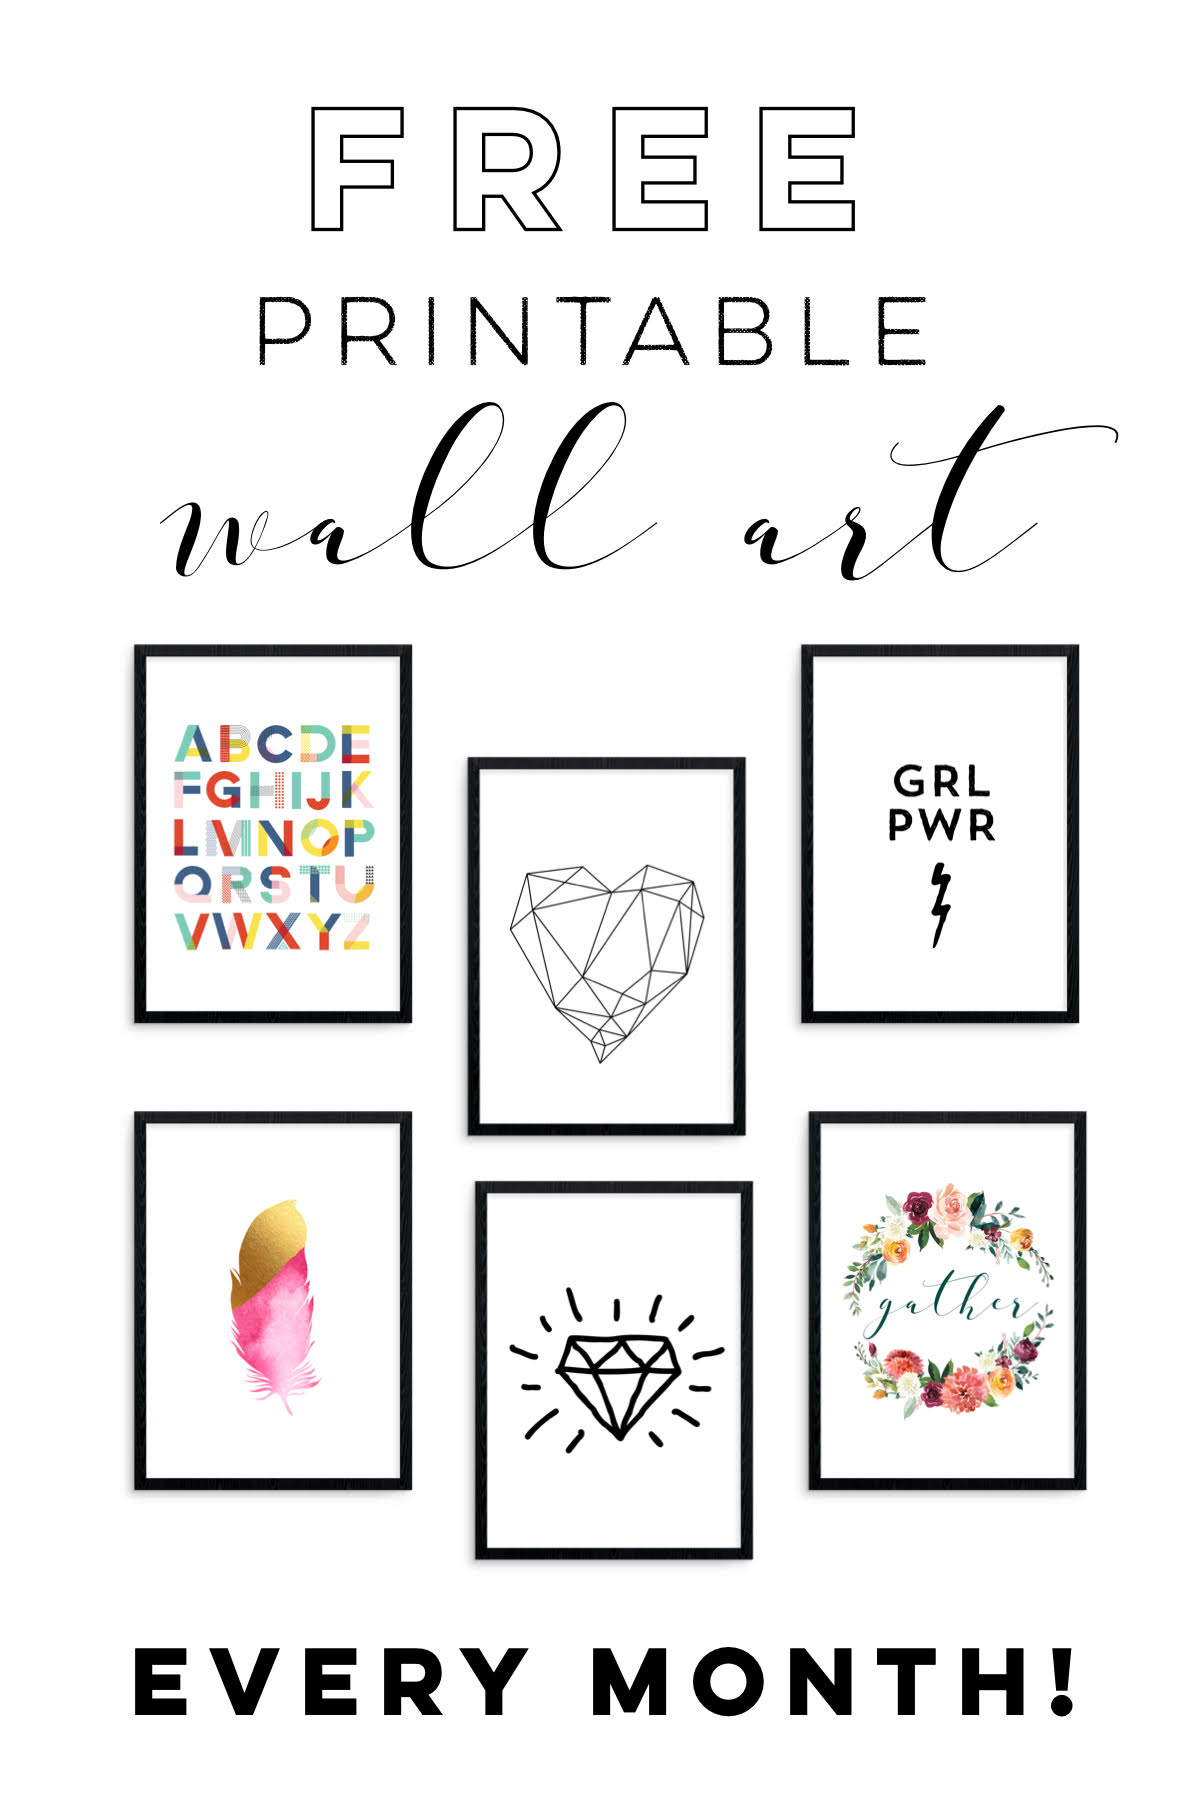 image regarding Free Printable Wall Decor referred to as Every month Membership Services: Totally free Printable Wall Artwork towards